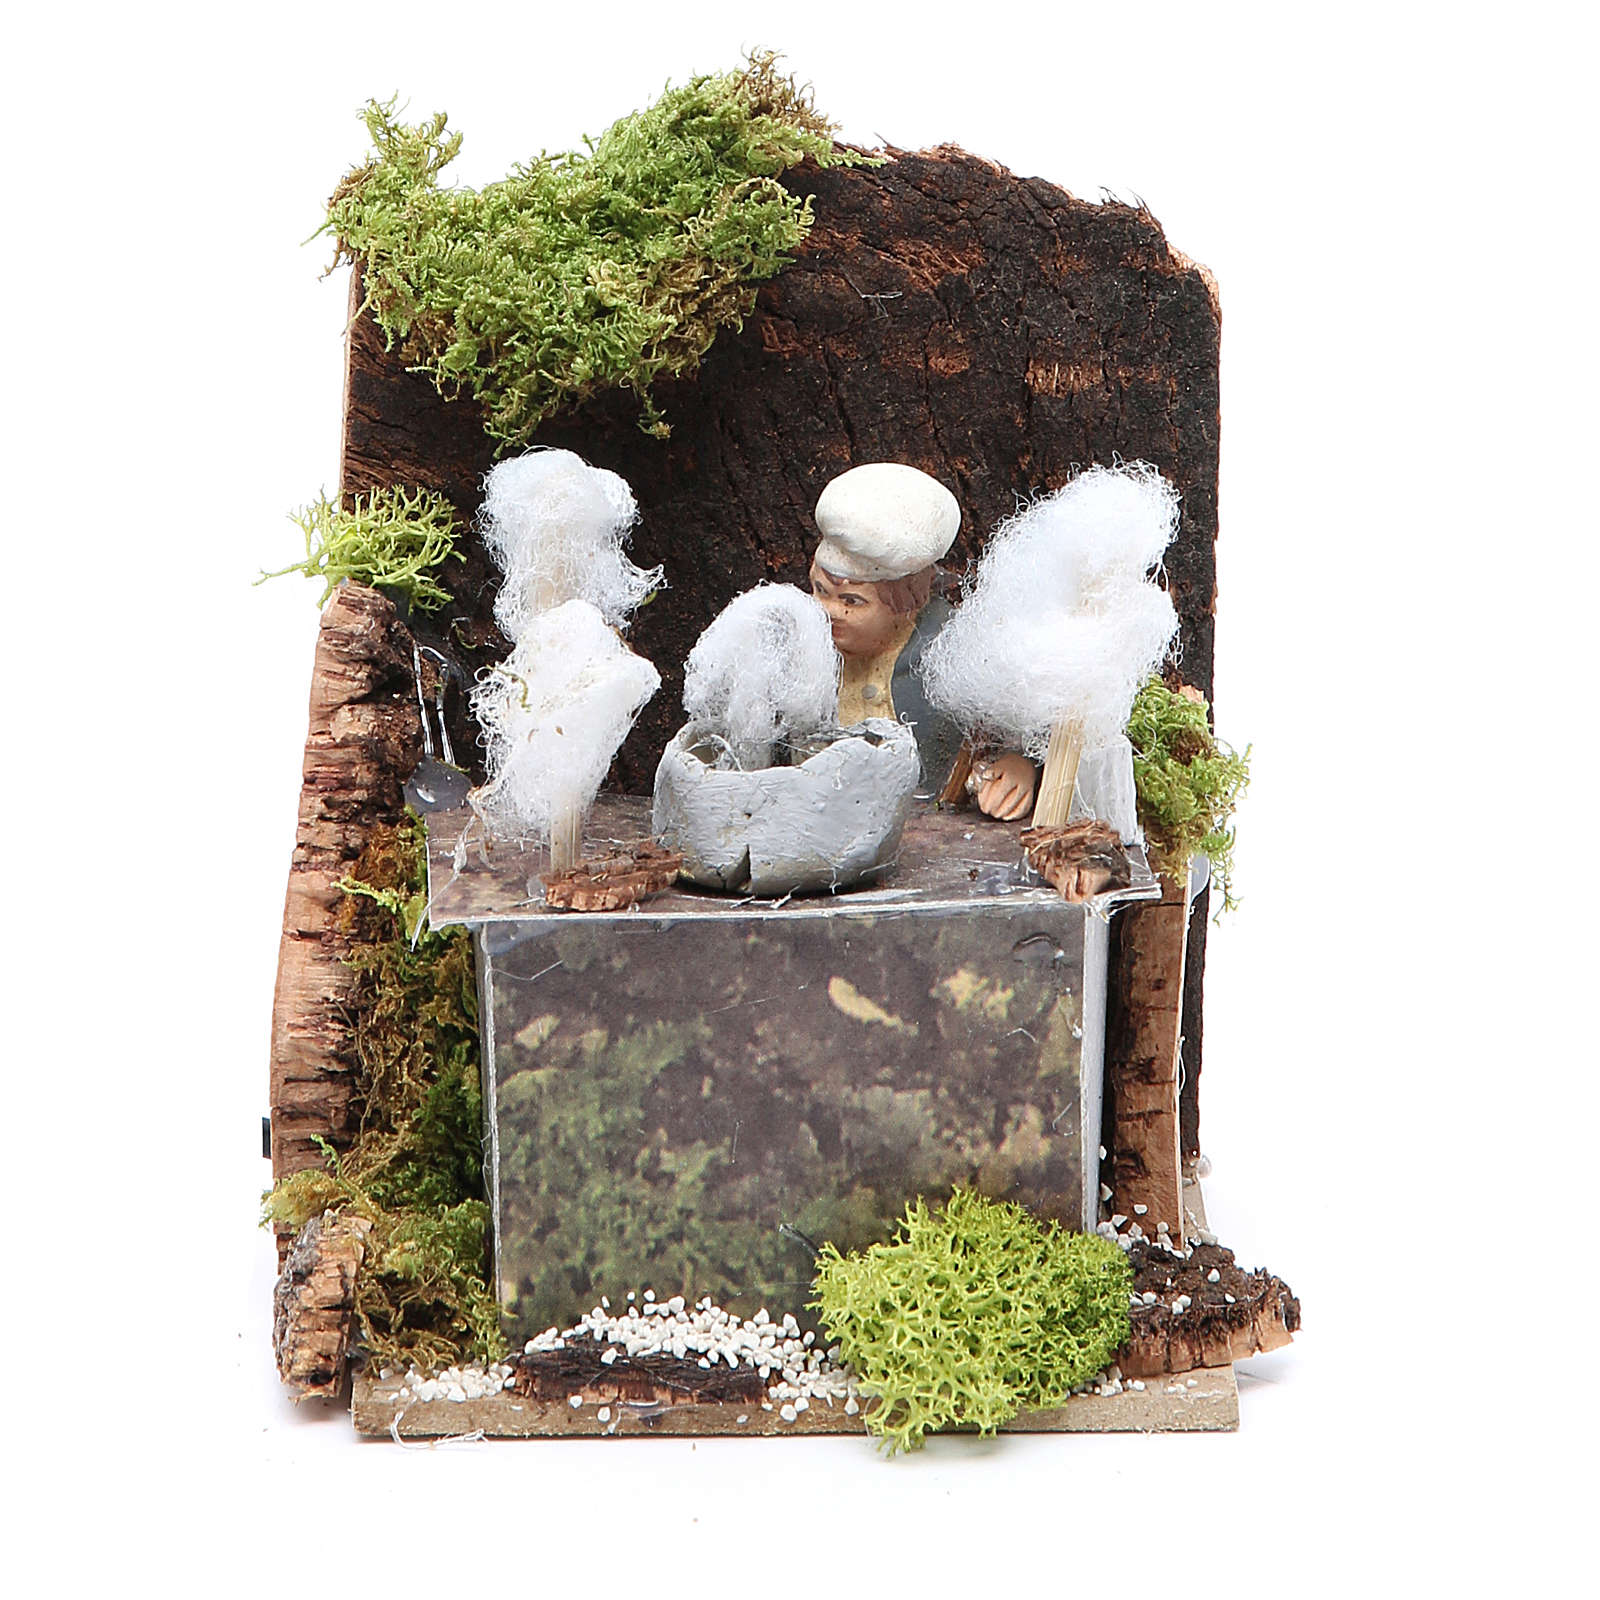 Man with candy floss measuring 7cm, animated nativity figurine 3